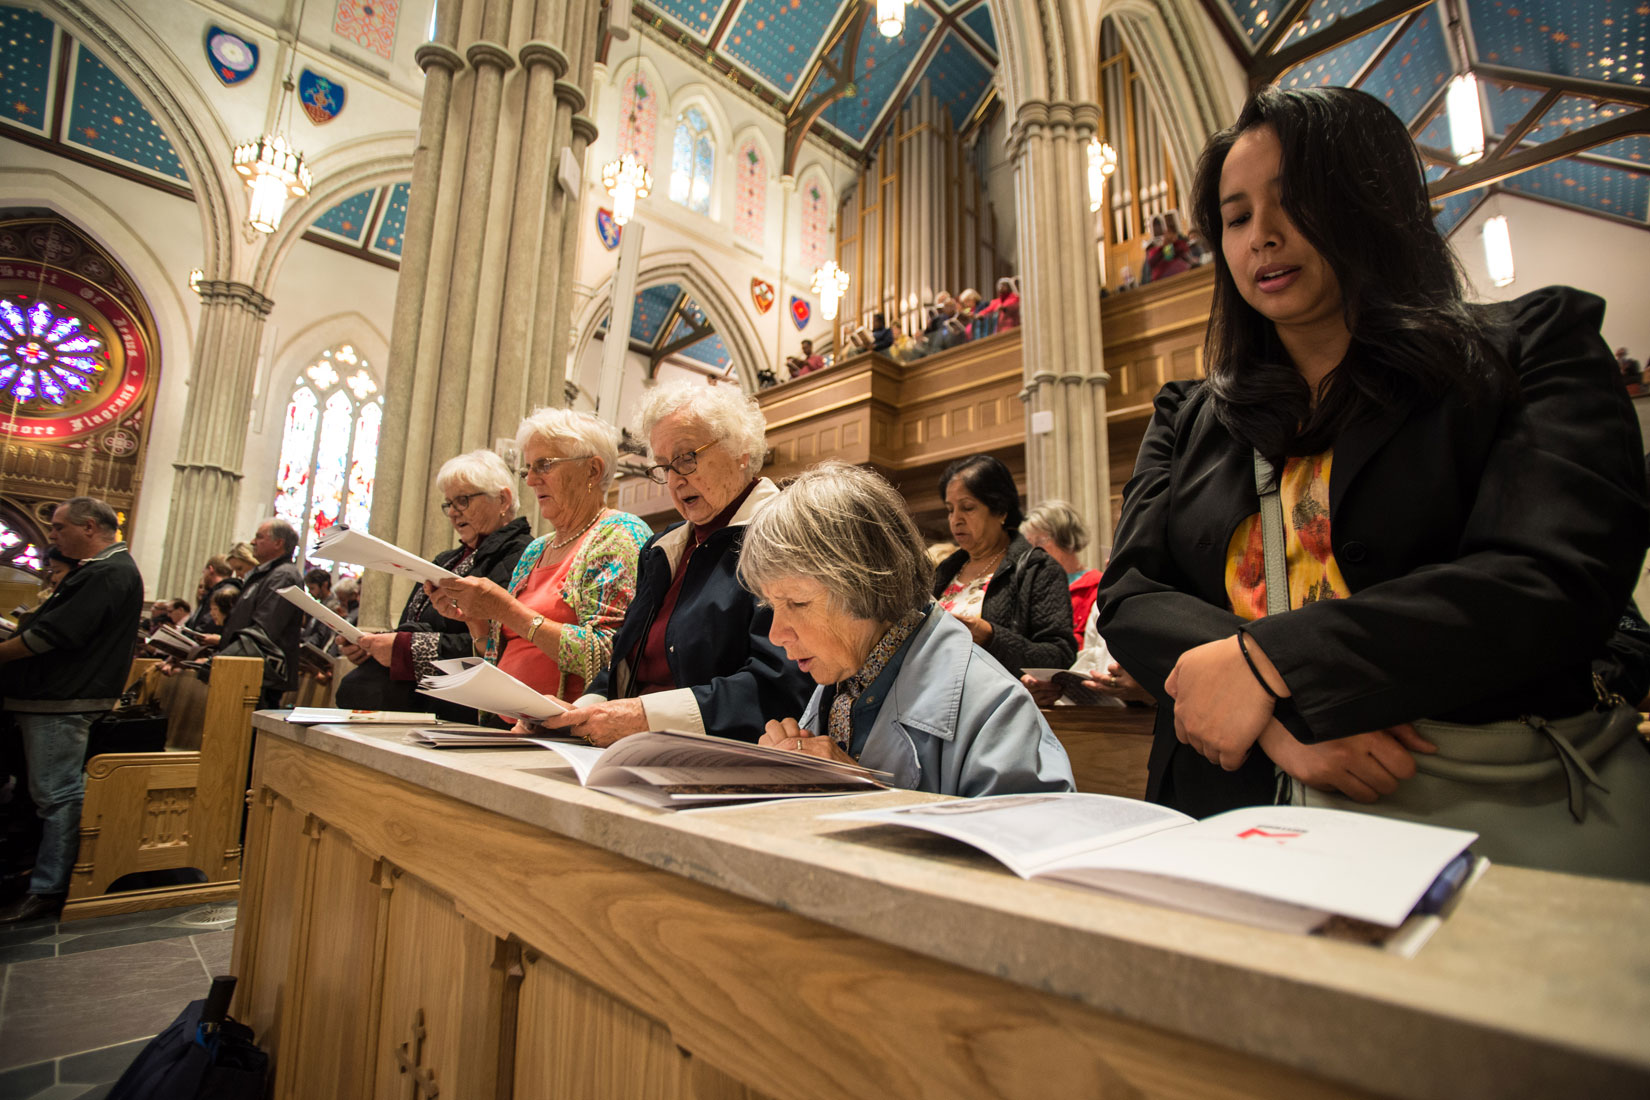 Women praying at the workers' thanksgiving Mass at St. Michael's Cathedral Sept. 30. (Photo by Michael Swan)